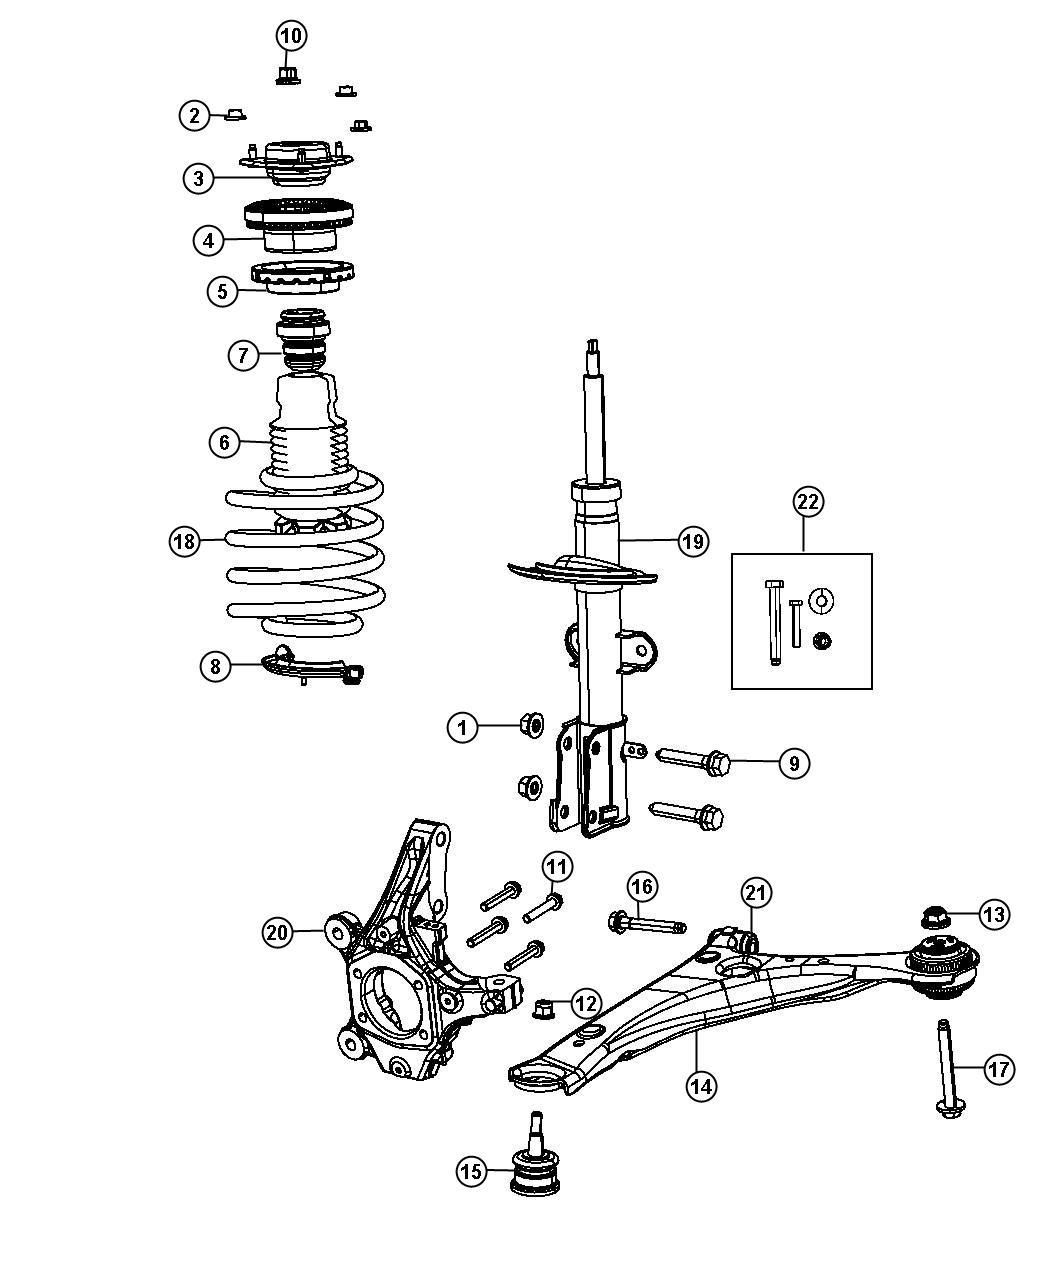 1942 dodge wiring diagram